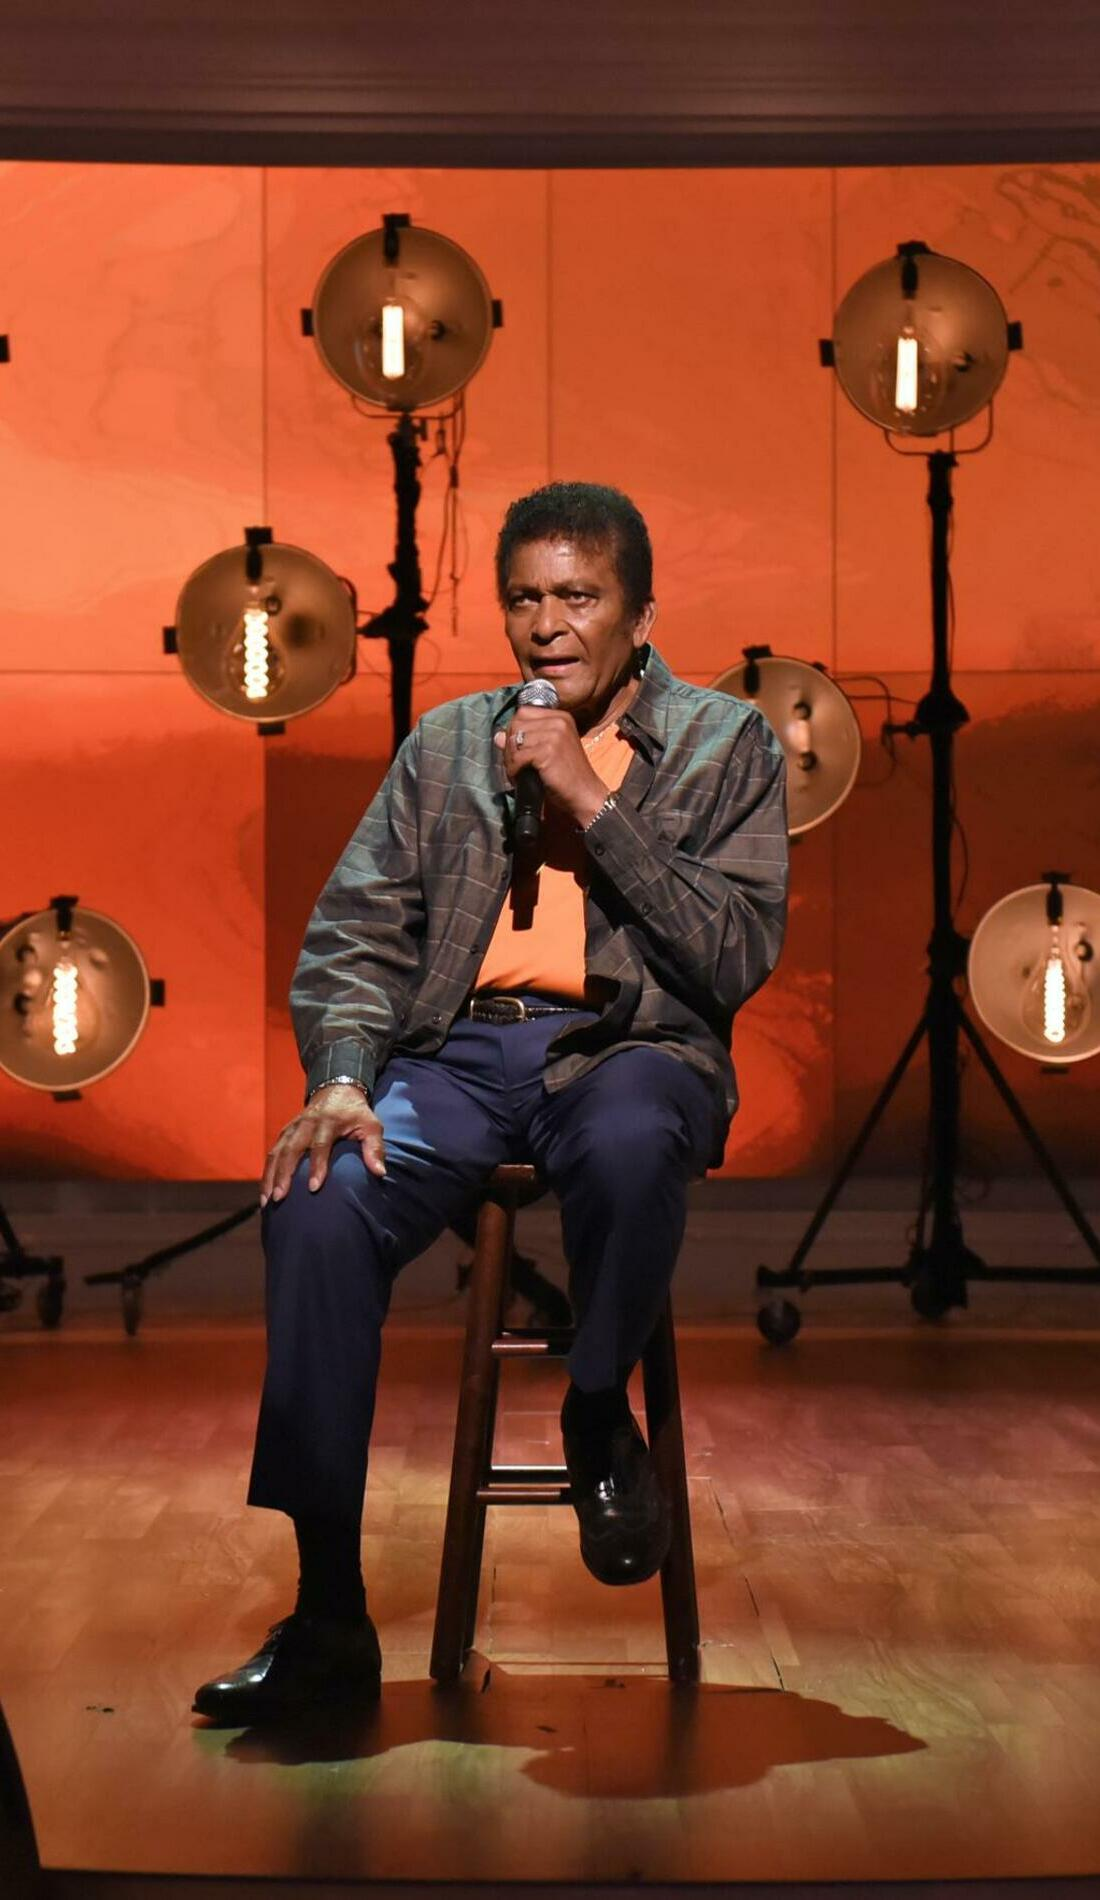 A Charley Pride live event